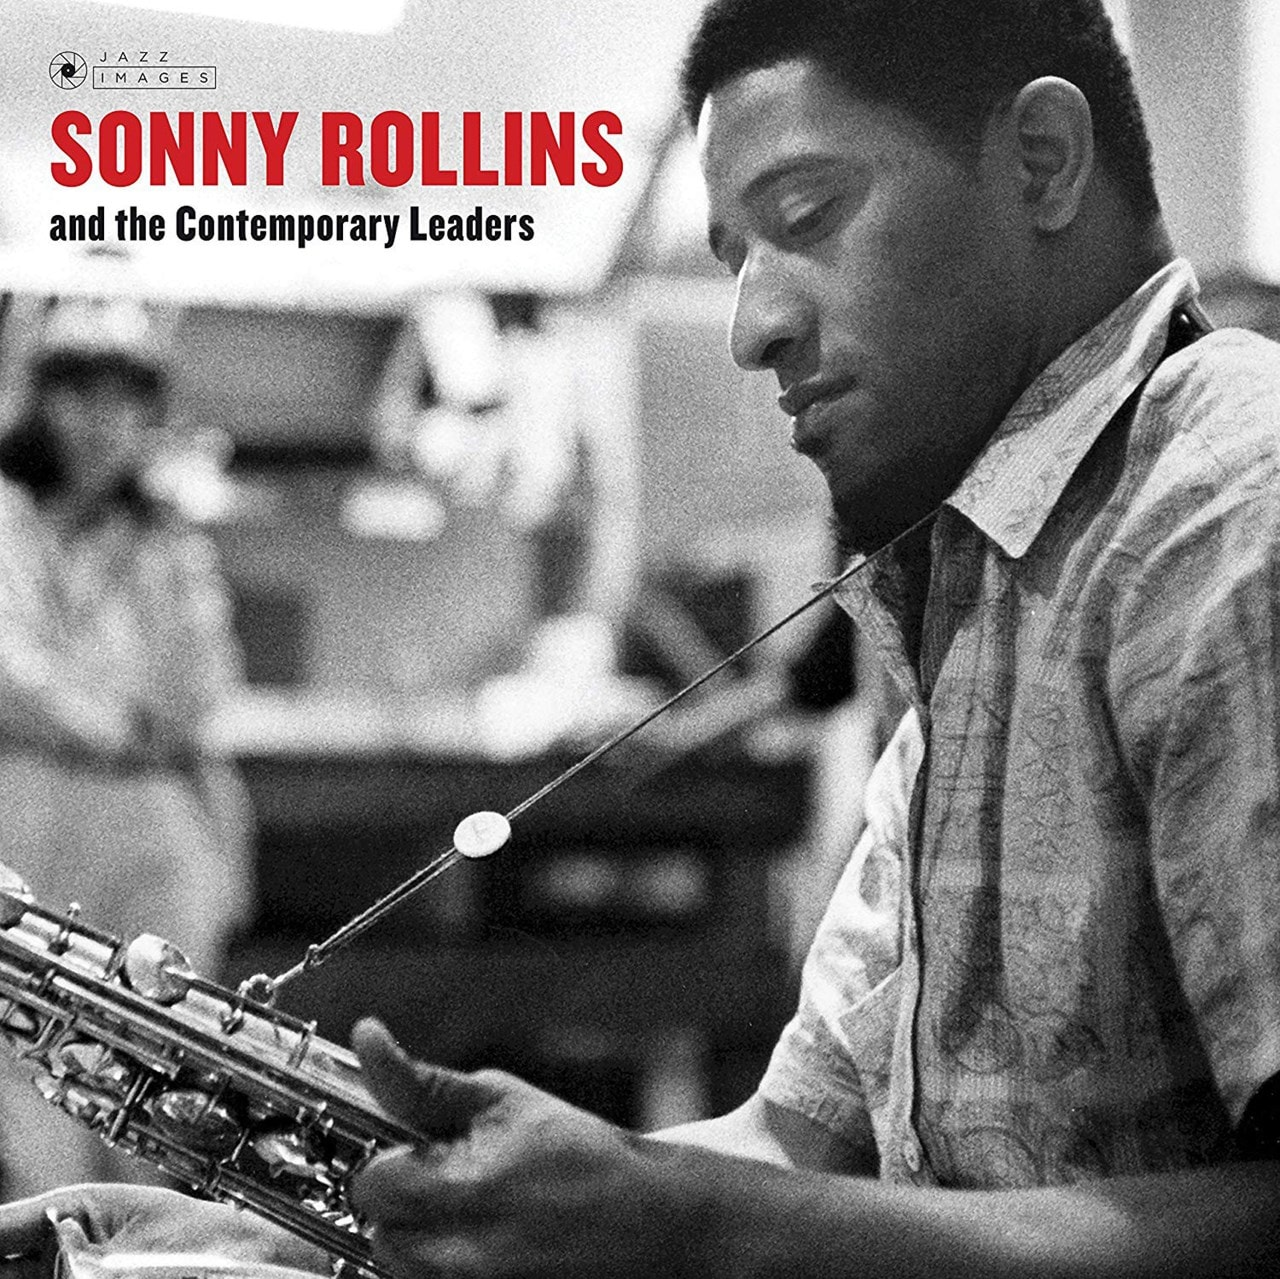 Sonny Rollins and the Contemporary Leaders - 1